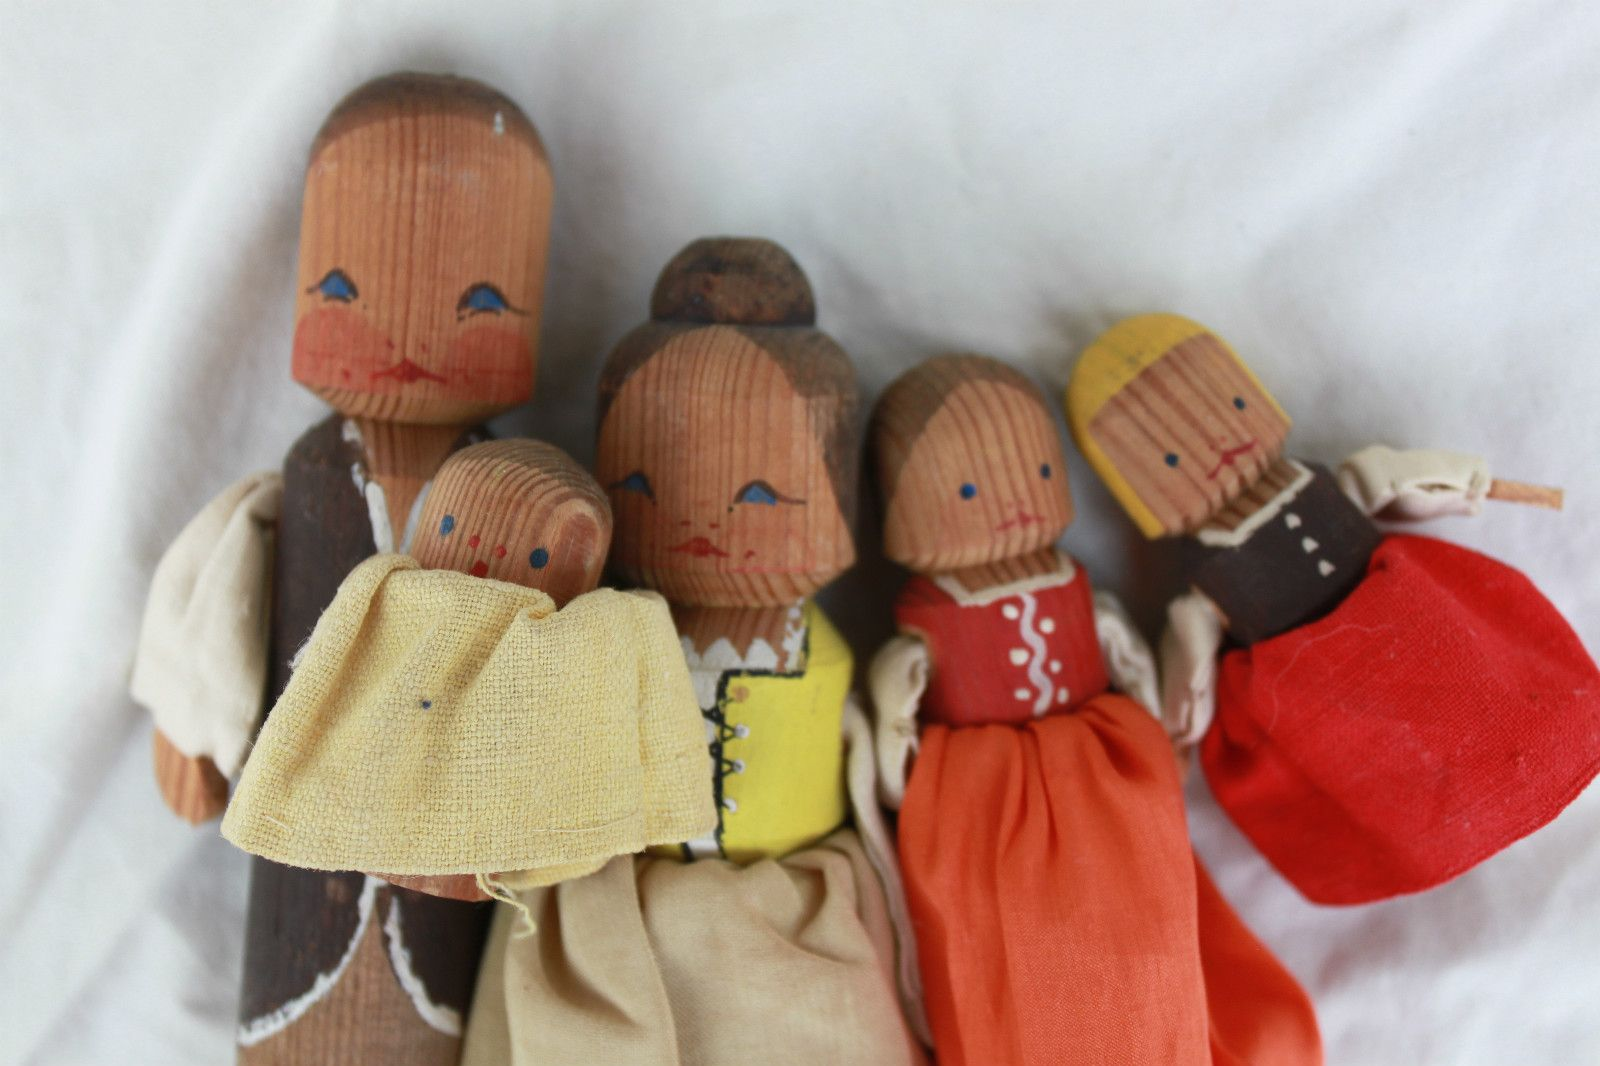 Pin on Woodens, Peg & Penny Woodens, Farthing Dolls